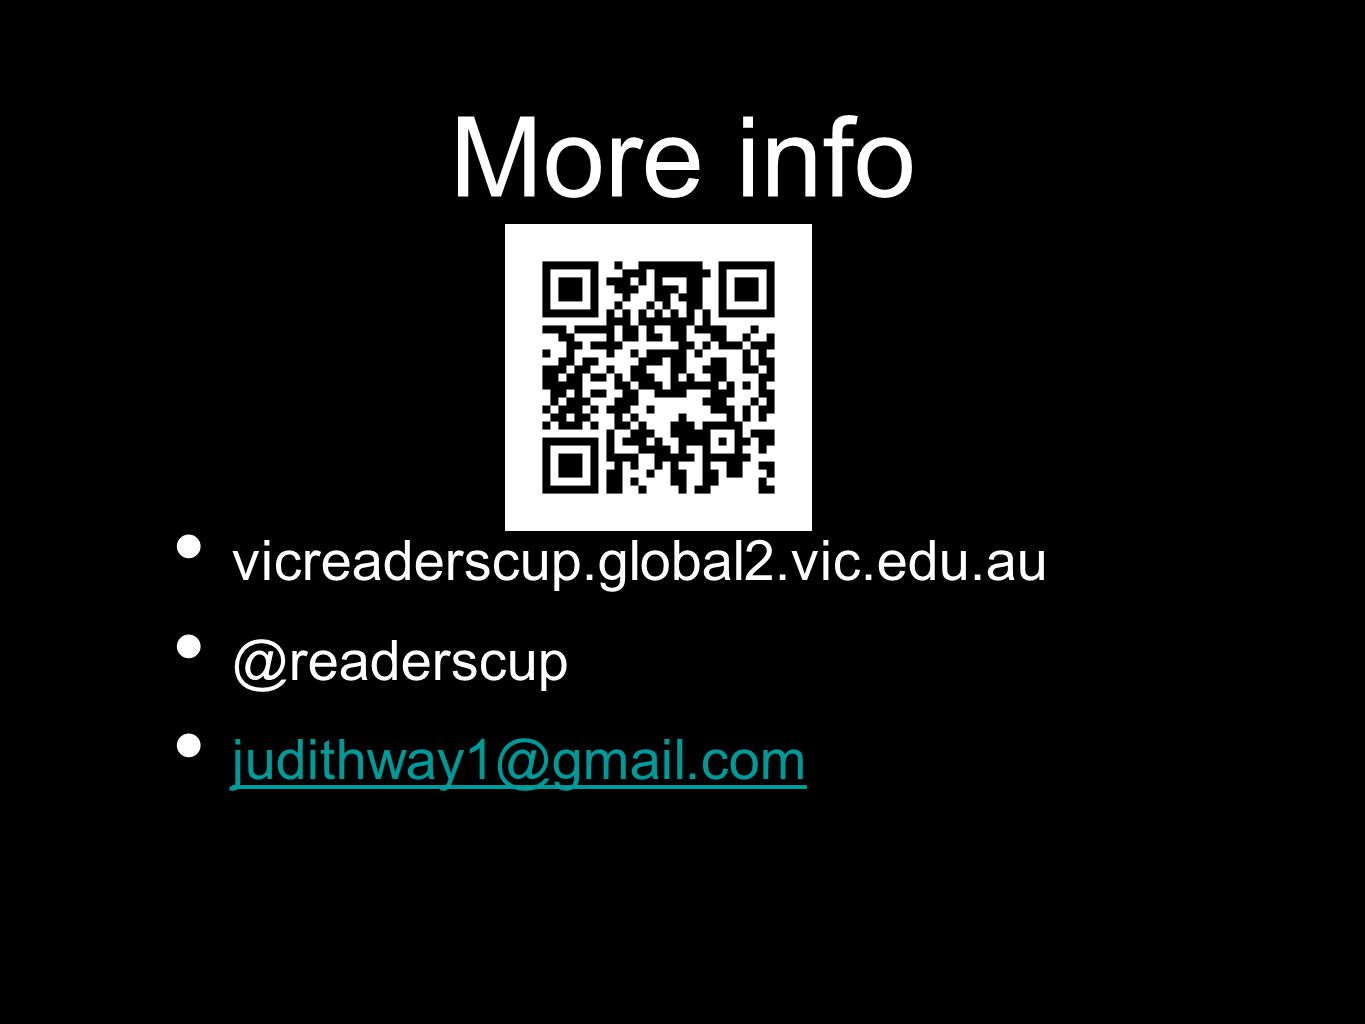 More info vicreaderscup.global2.vic.edu.au @readerscup judithway1@gmail.com